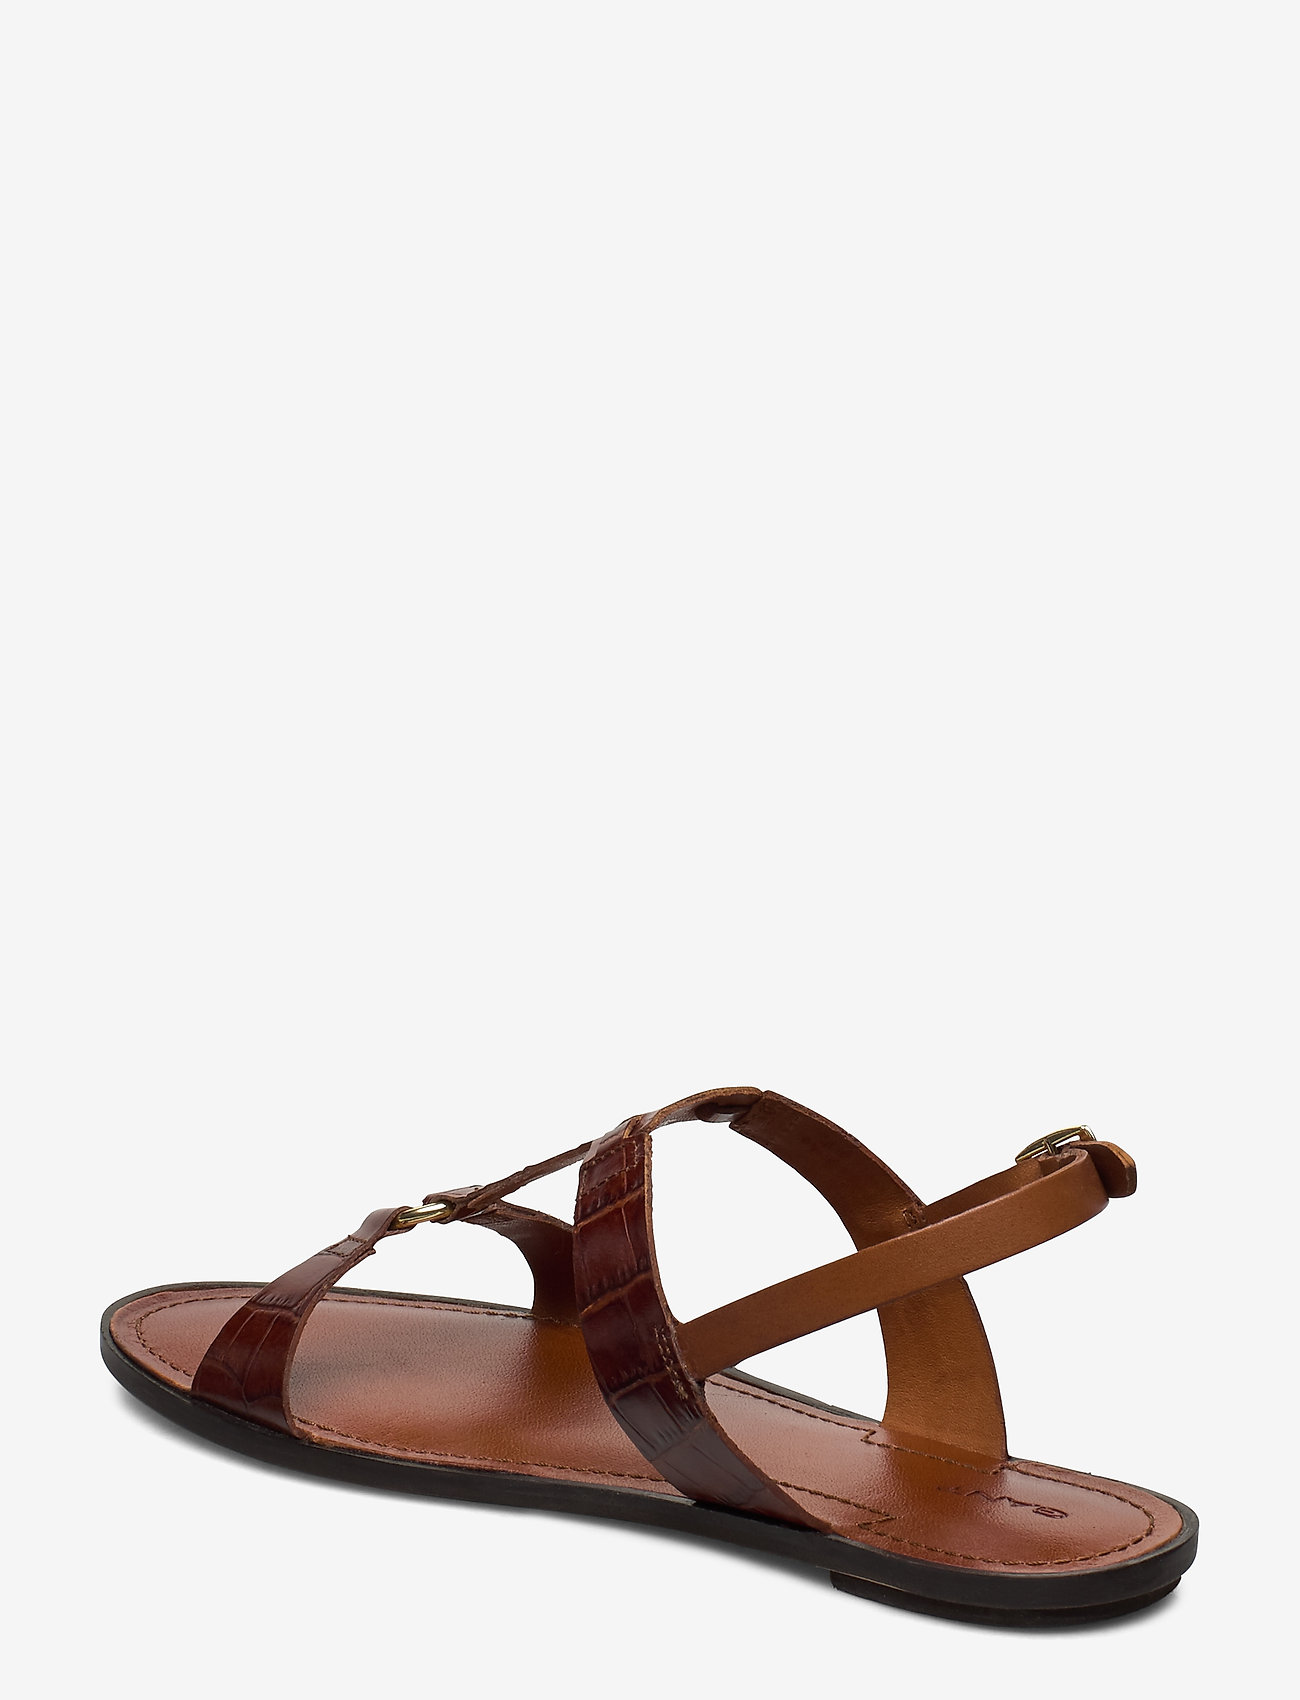 Beechum Sandal (Cognac Crocco Optic) (629.30 kr) - GANT